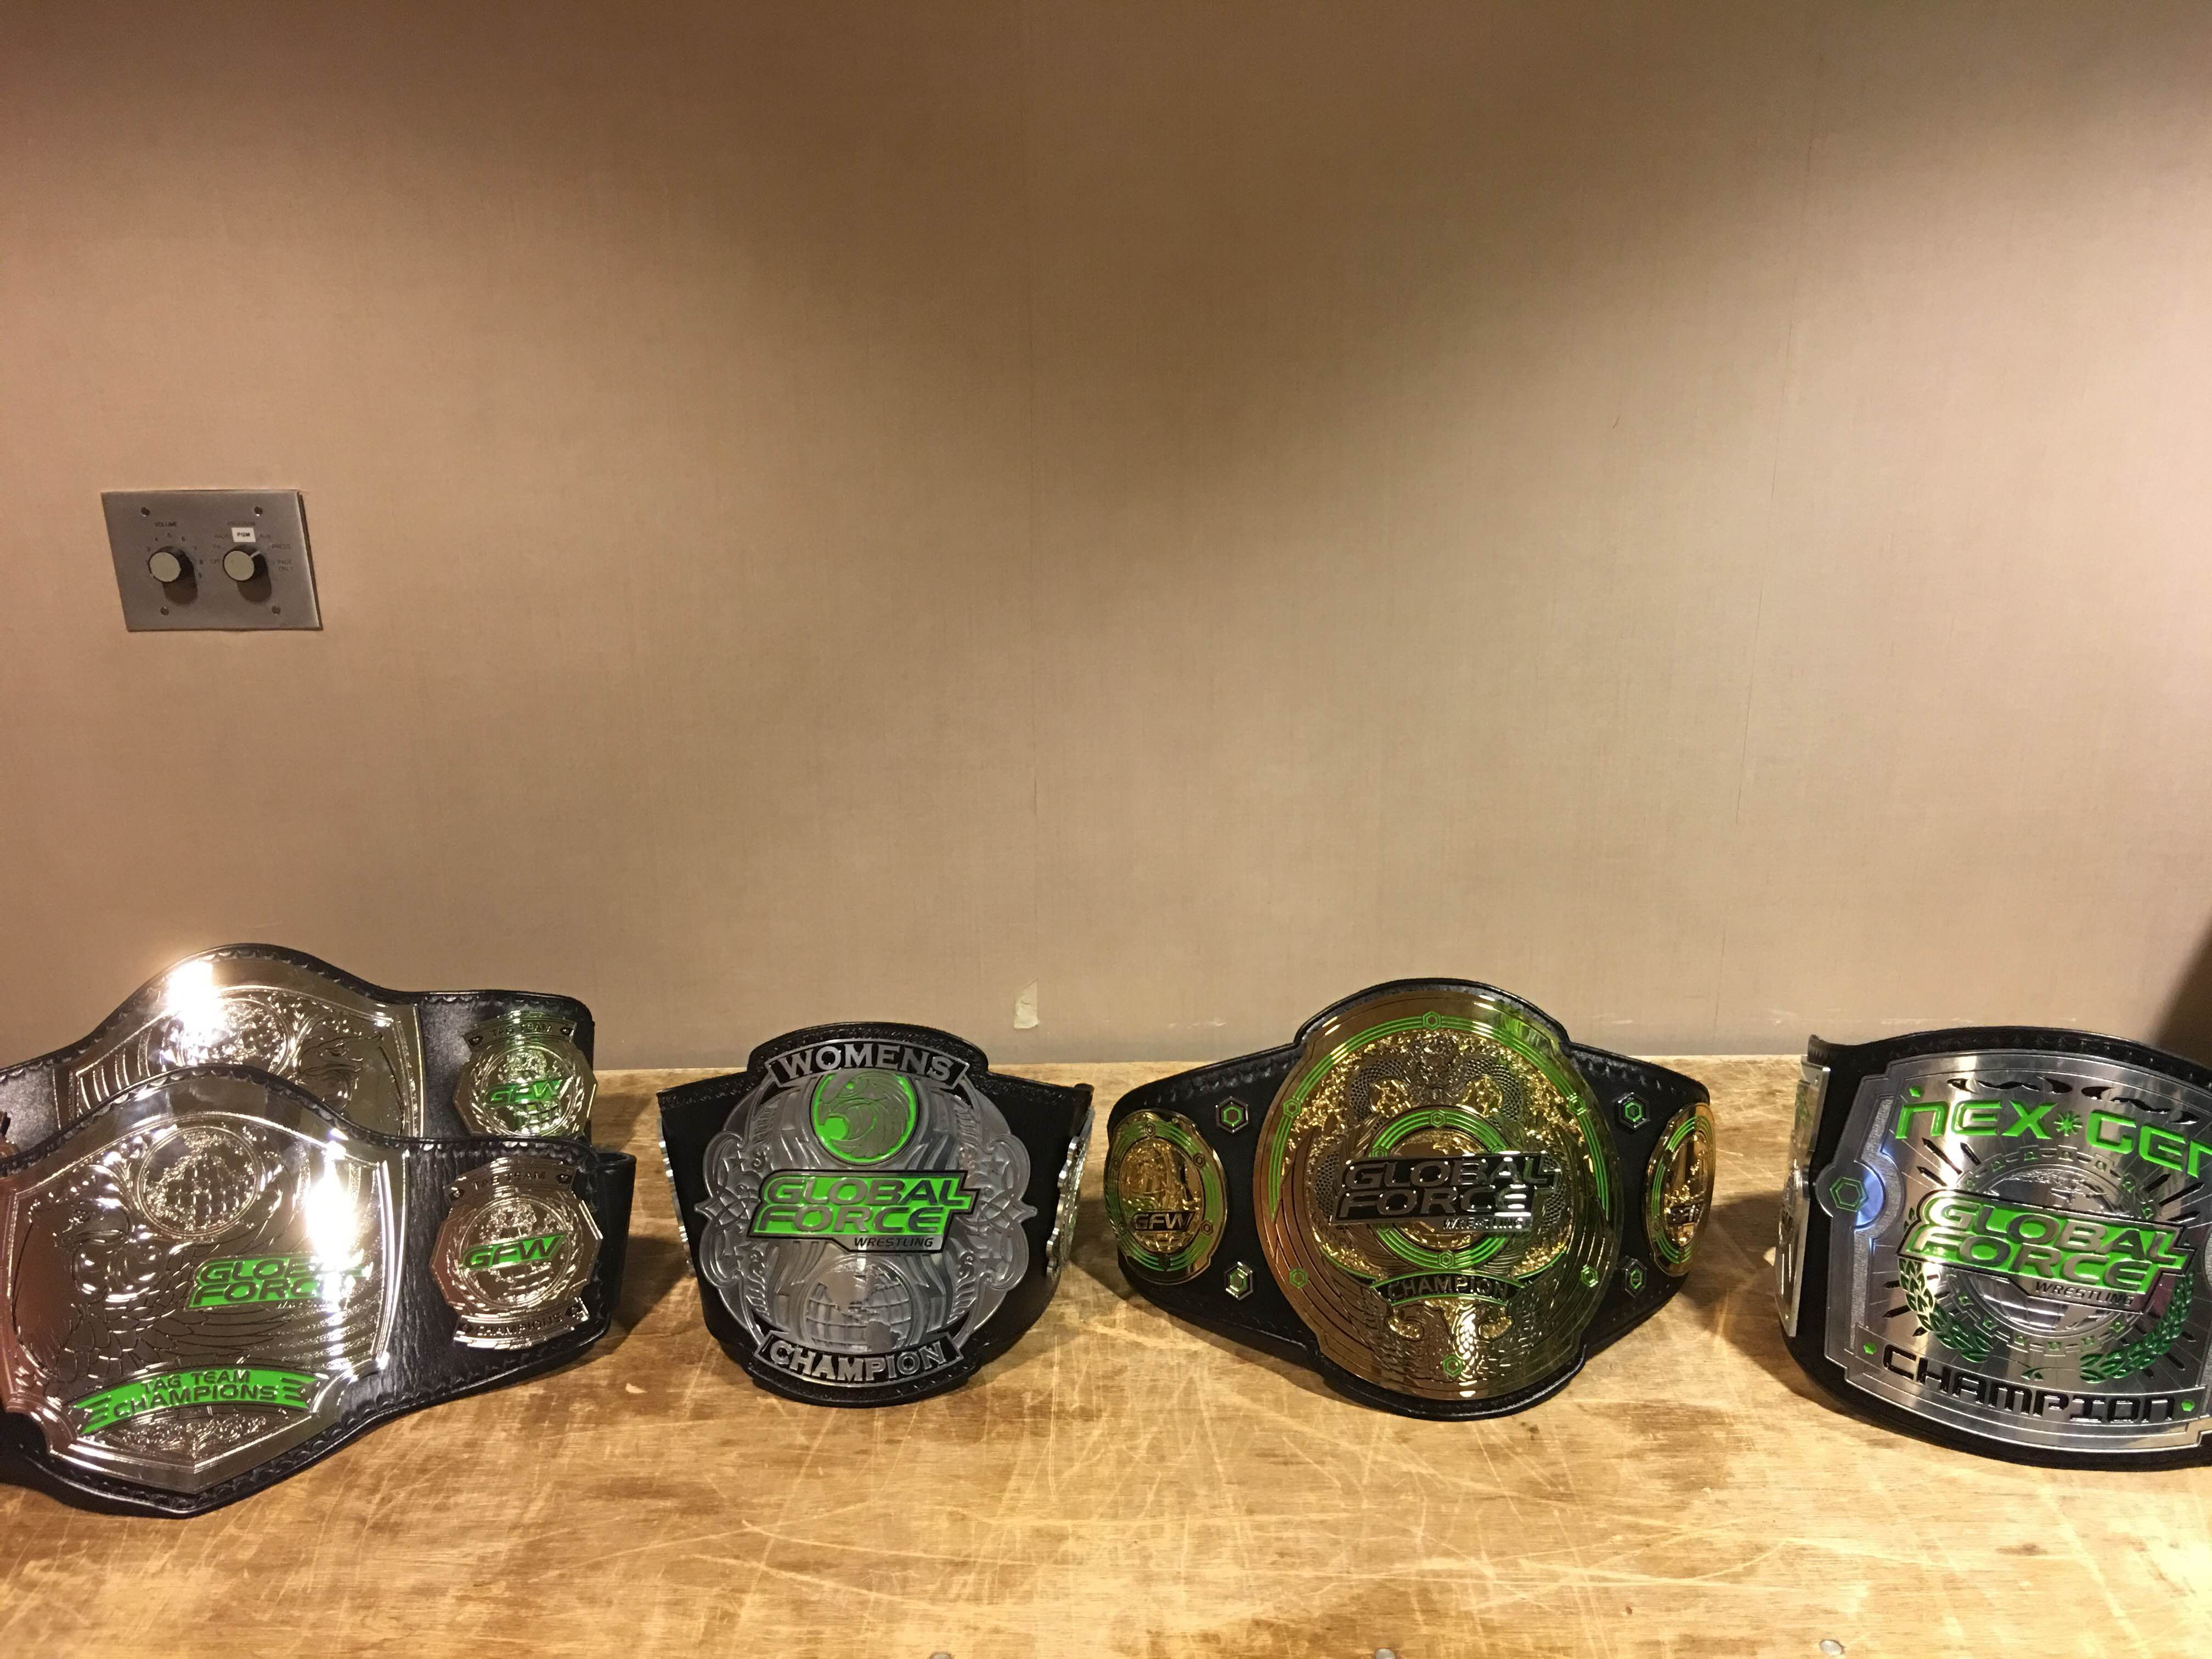 GFW unveils its world title belt, the 'Global Championship' - Cageside Seats